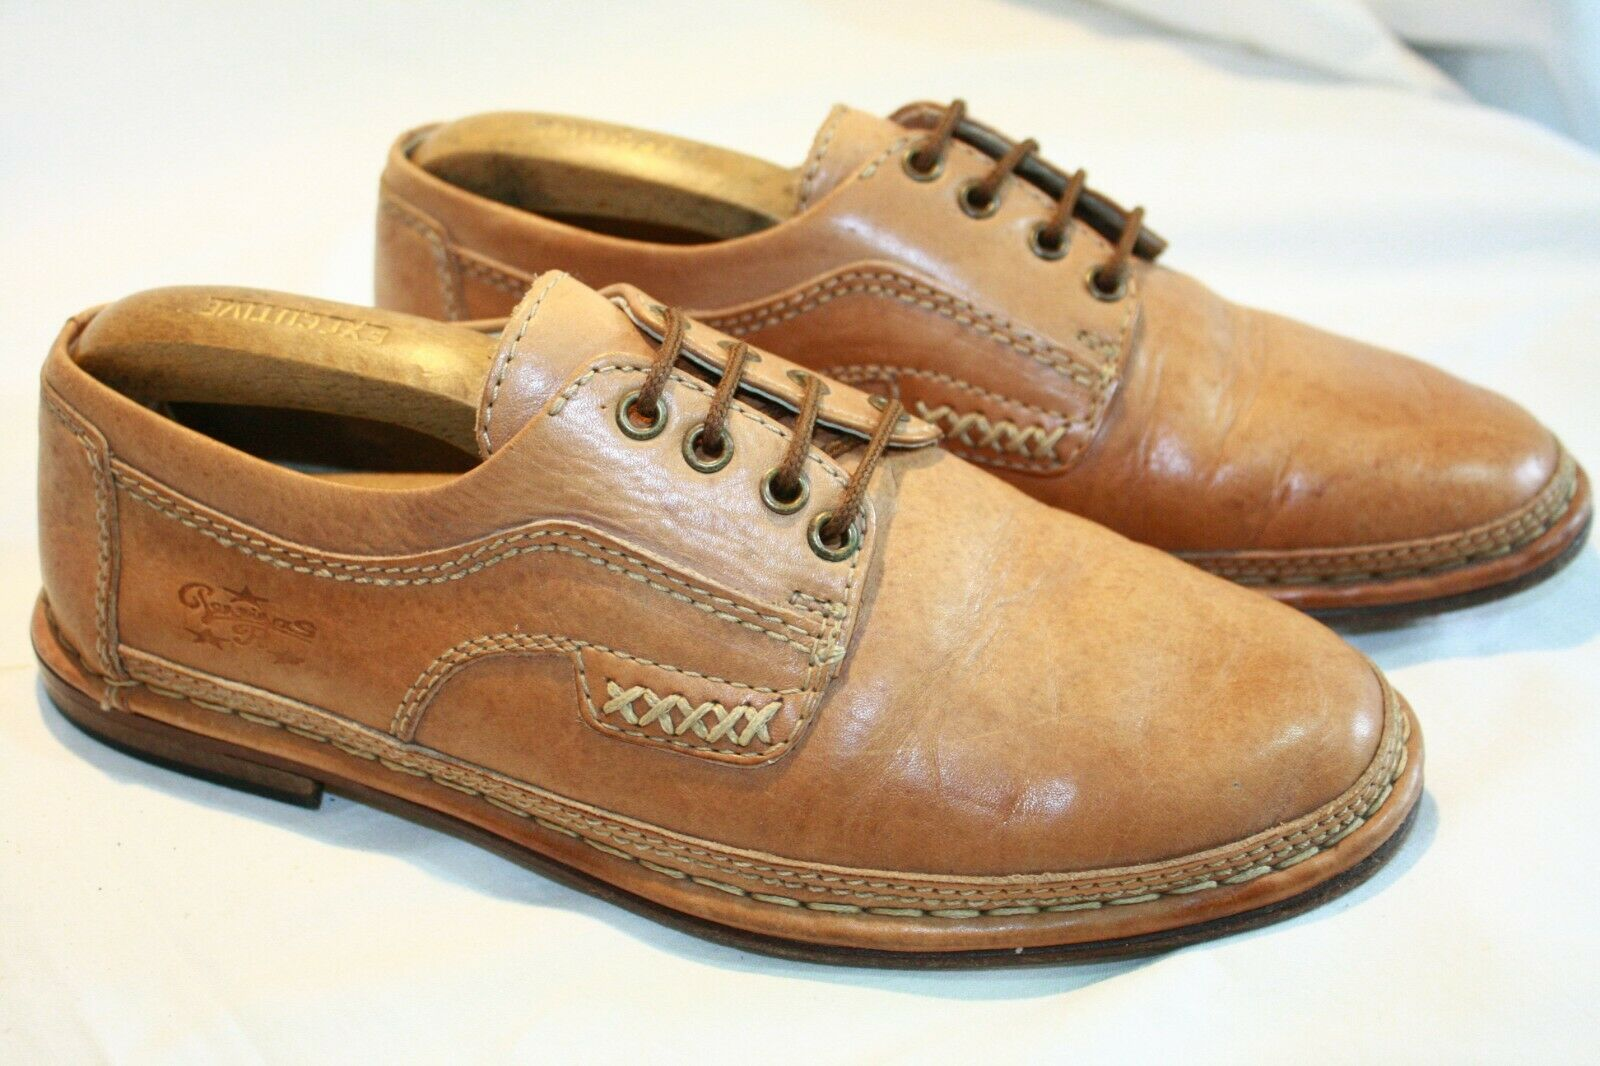 PERRINA DESIGNER MENS APPROX SIZE 7 SHOES + LEATHER UPPERS, LINING & THRU SOLES